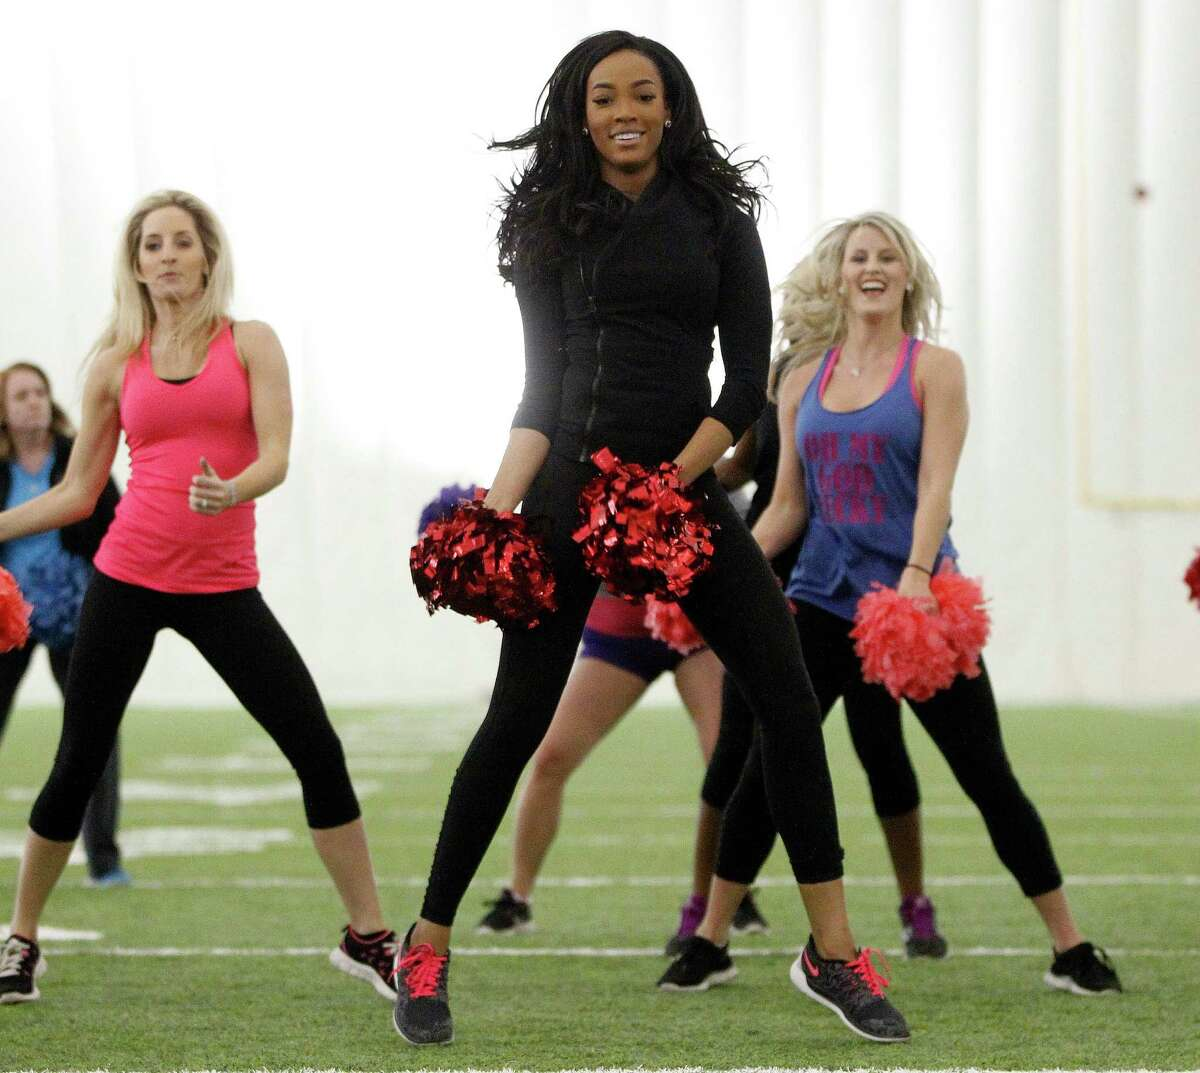 Current Houston Texans cheerleader Lesha dances with others during Cheerba, a fitness workout by Texans' cheerleading coach Alto Gary at the Houston Texans Methodist Training Center (aka